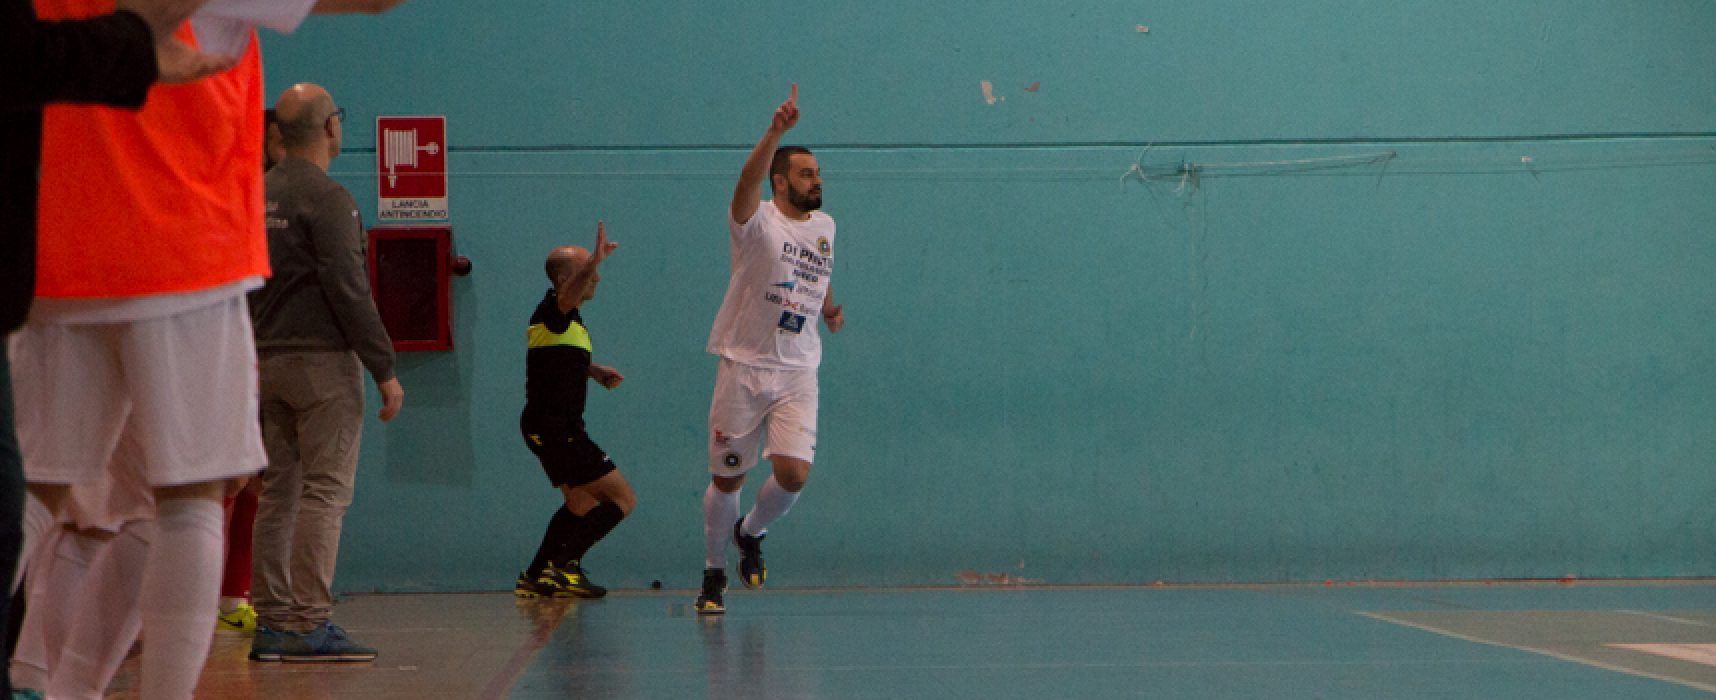 Futsal Bisceglie – Virtus Noicattaro 3-2 / HIGHLIGHTS VIDEO